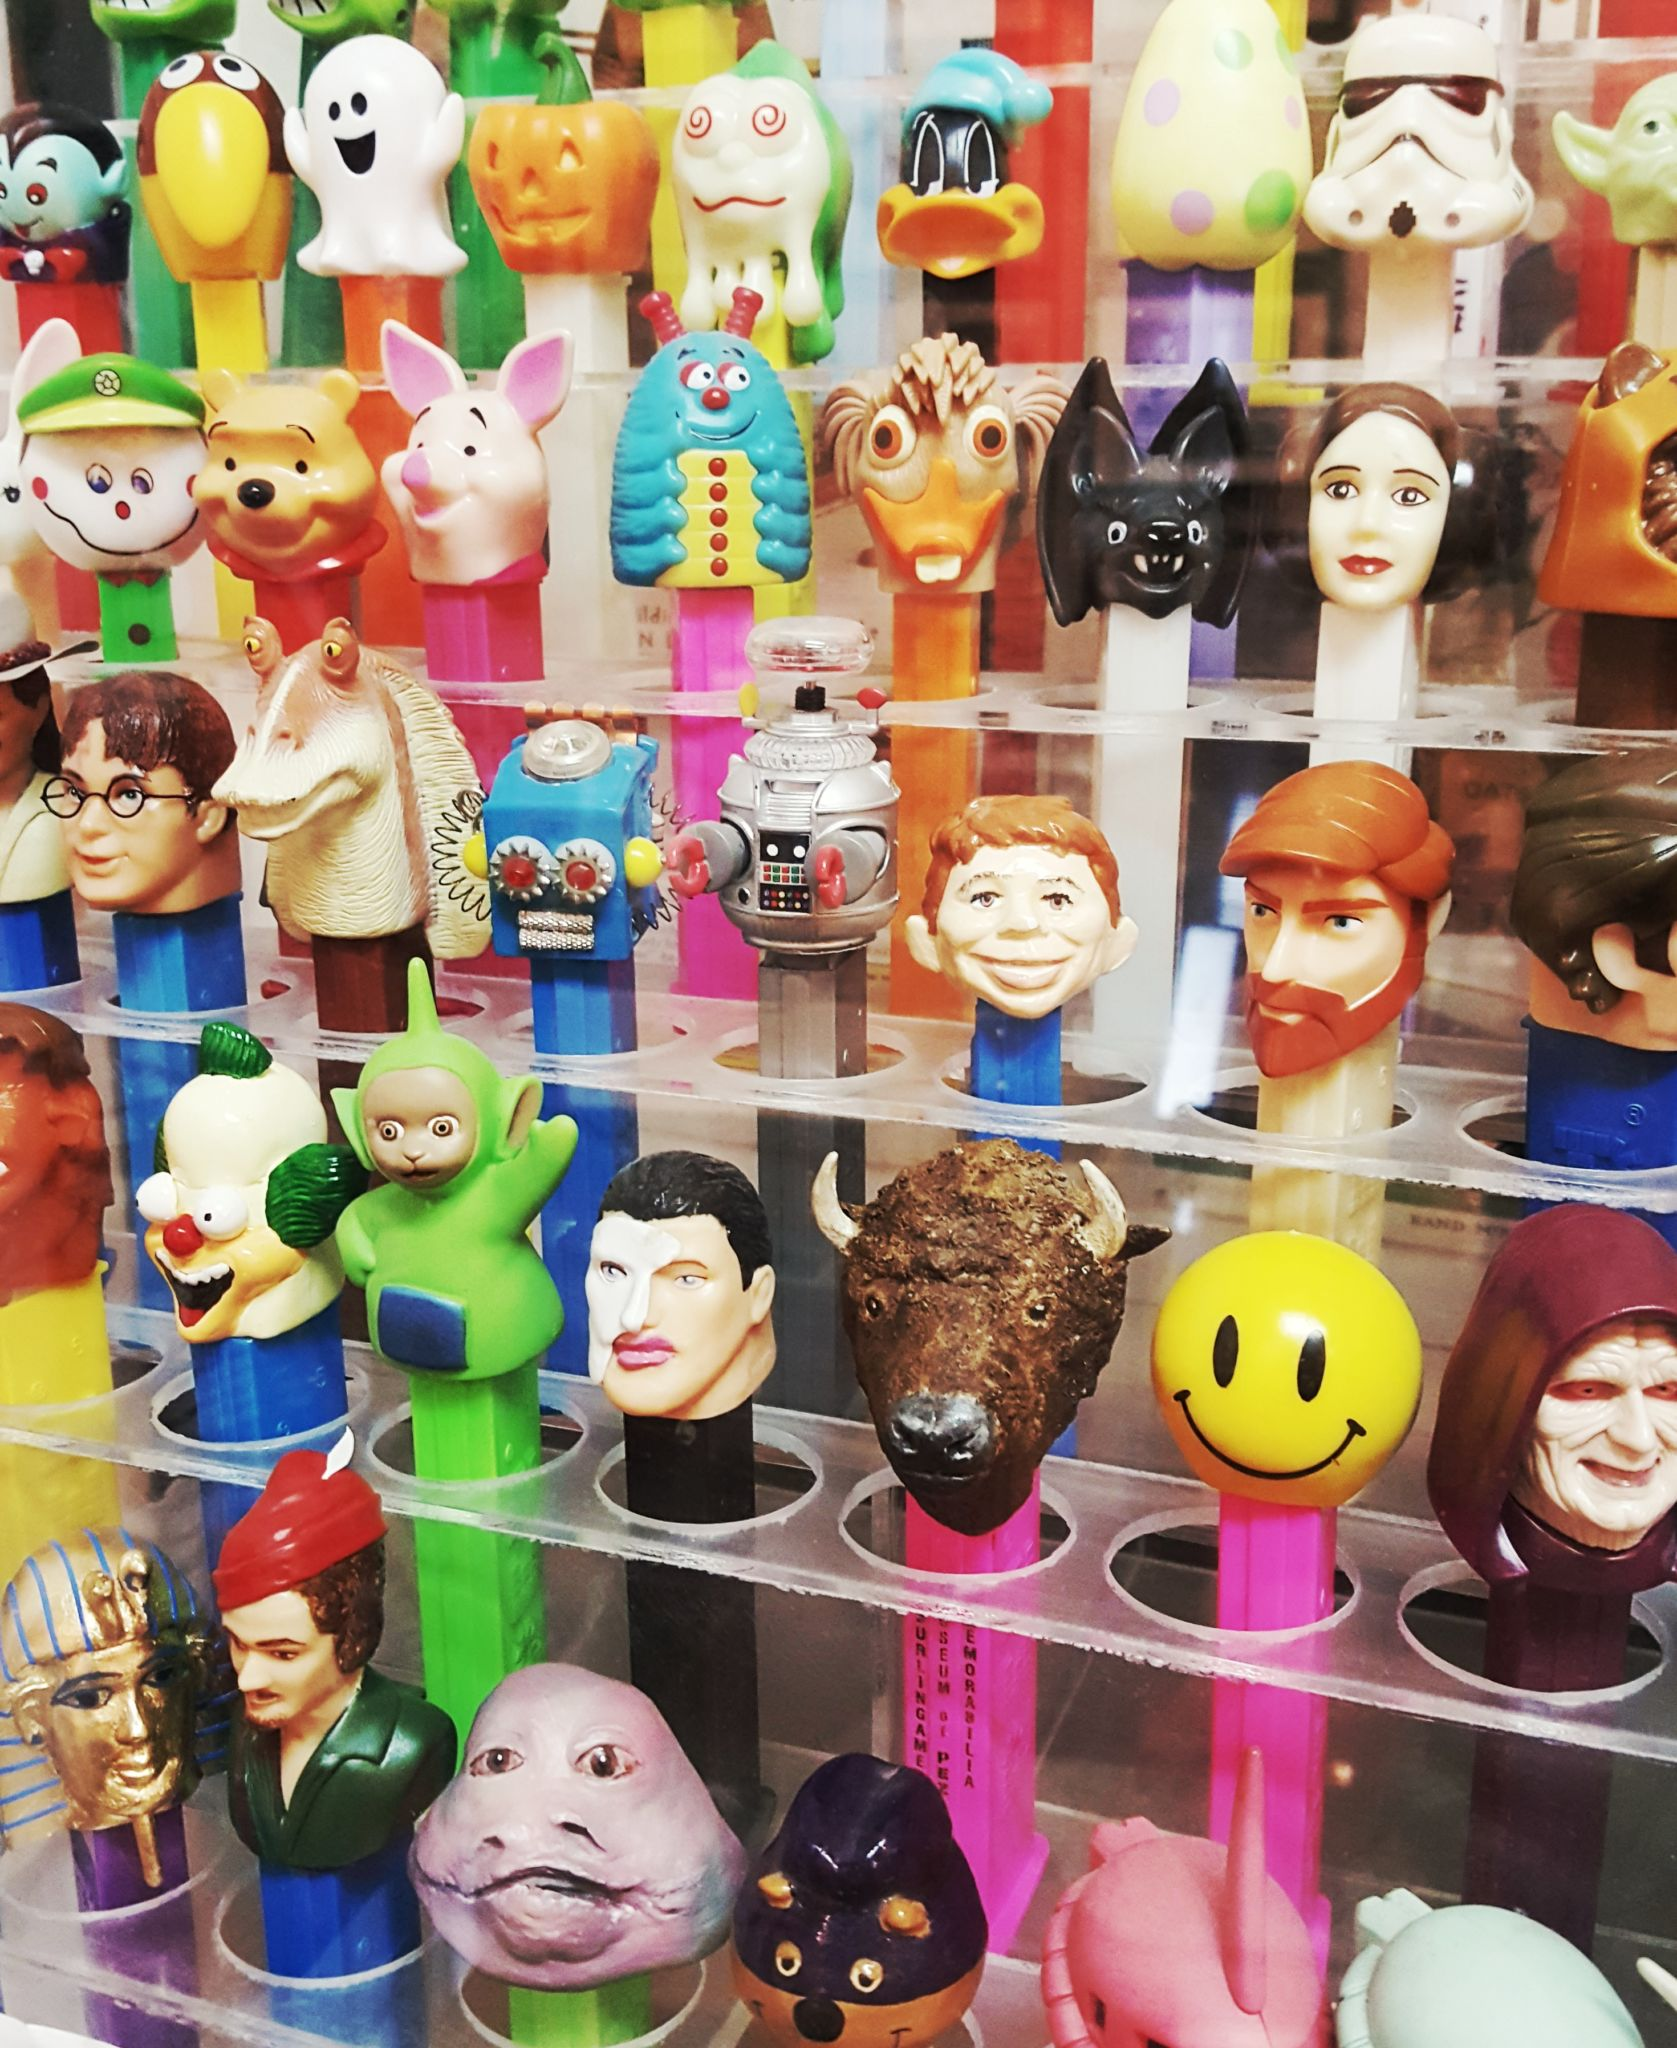 Assorted vintage Pez dispensers at the Pez Museum